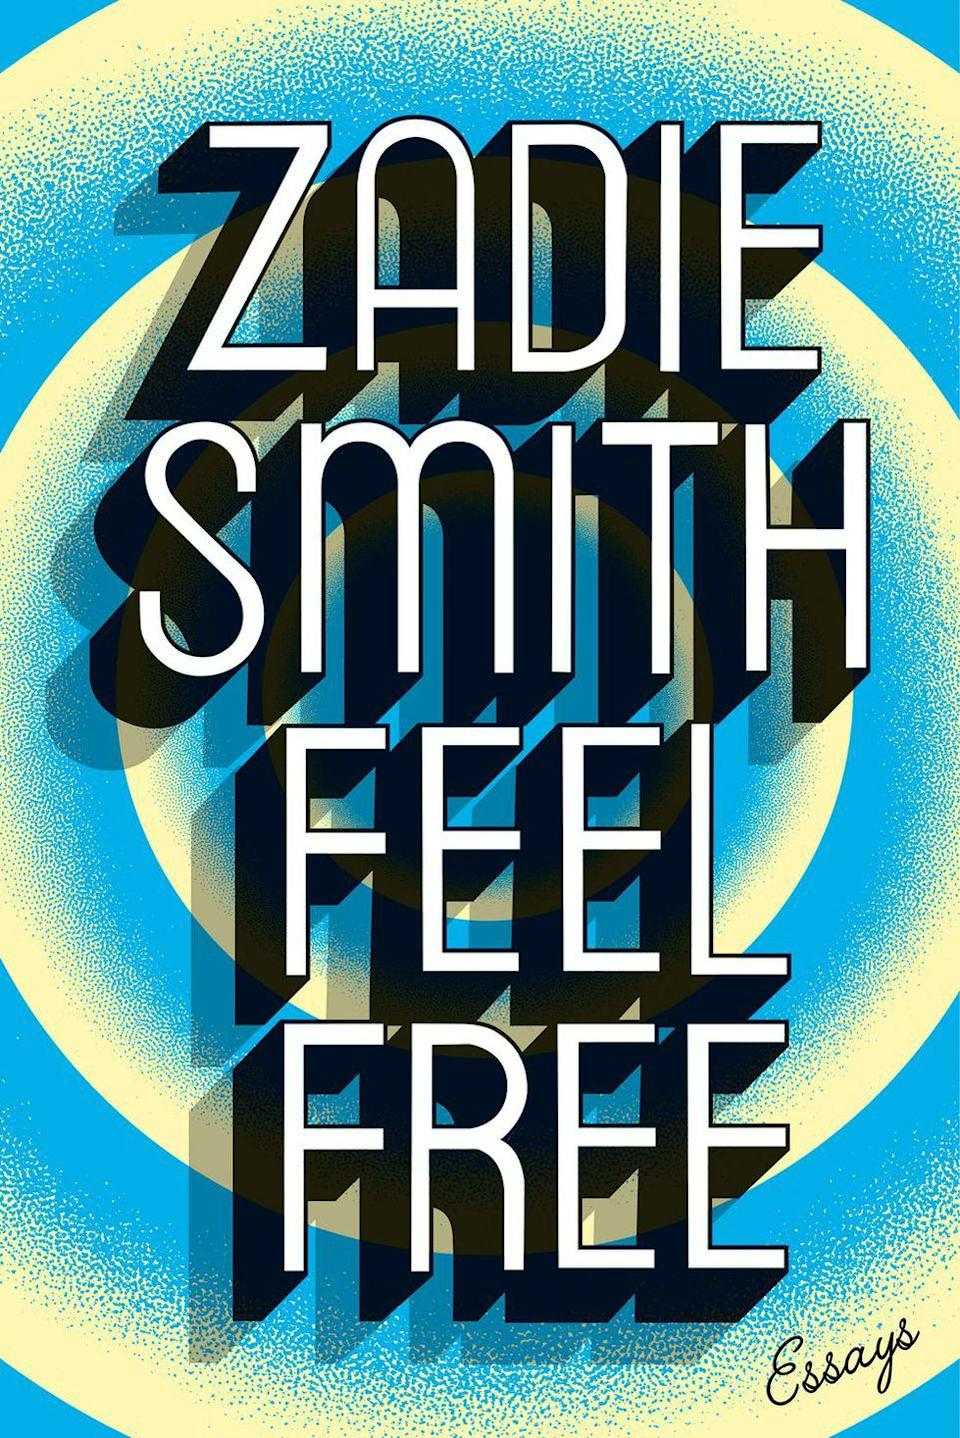 "<p>$17</p><p><a href=""https://www.amazon.com/Feel-Free-Essays-Zadie-Smith/dp/1594206252/"" rel=""nofollow noopener"" target=""_blank"" data-ylk=""slk:BUY NOW"" class=""link rapid-noclick-resp"">BUY NOW</a></p><p>In this entertaining essay compilation, best-selling author Zadie Smith takes readers inside her curious mind as she explores all facets of culture - from Brexit to Beyoncé - all with her signature wit and wisdom. </p>"